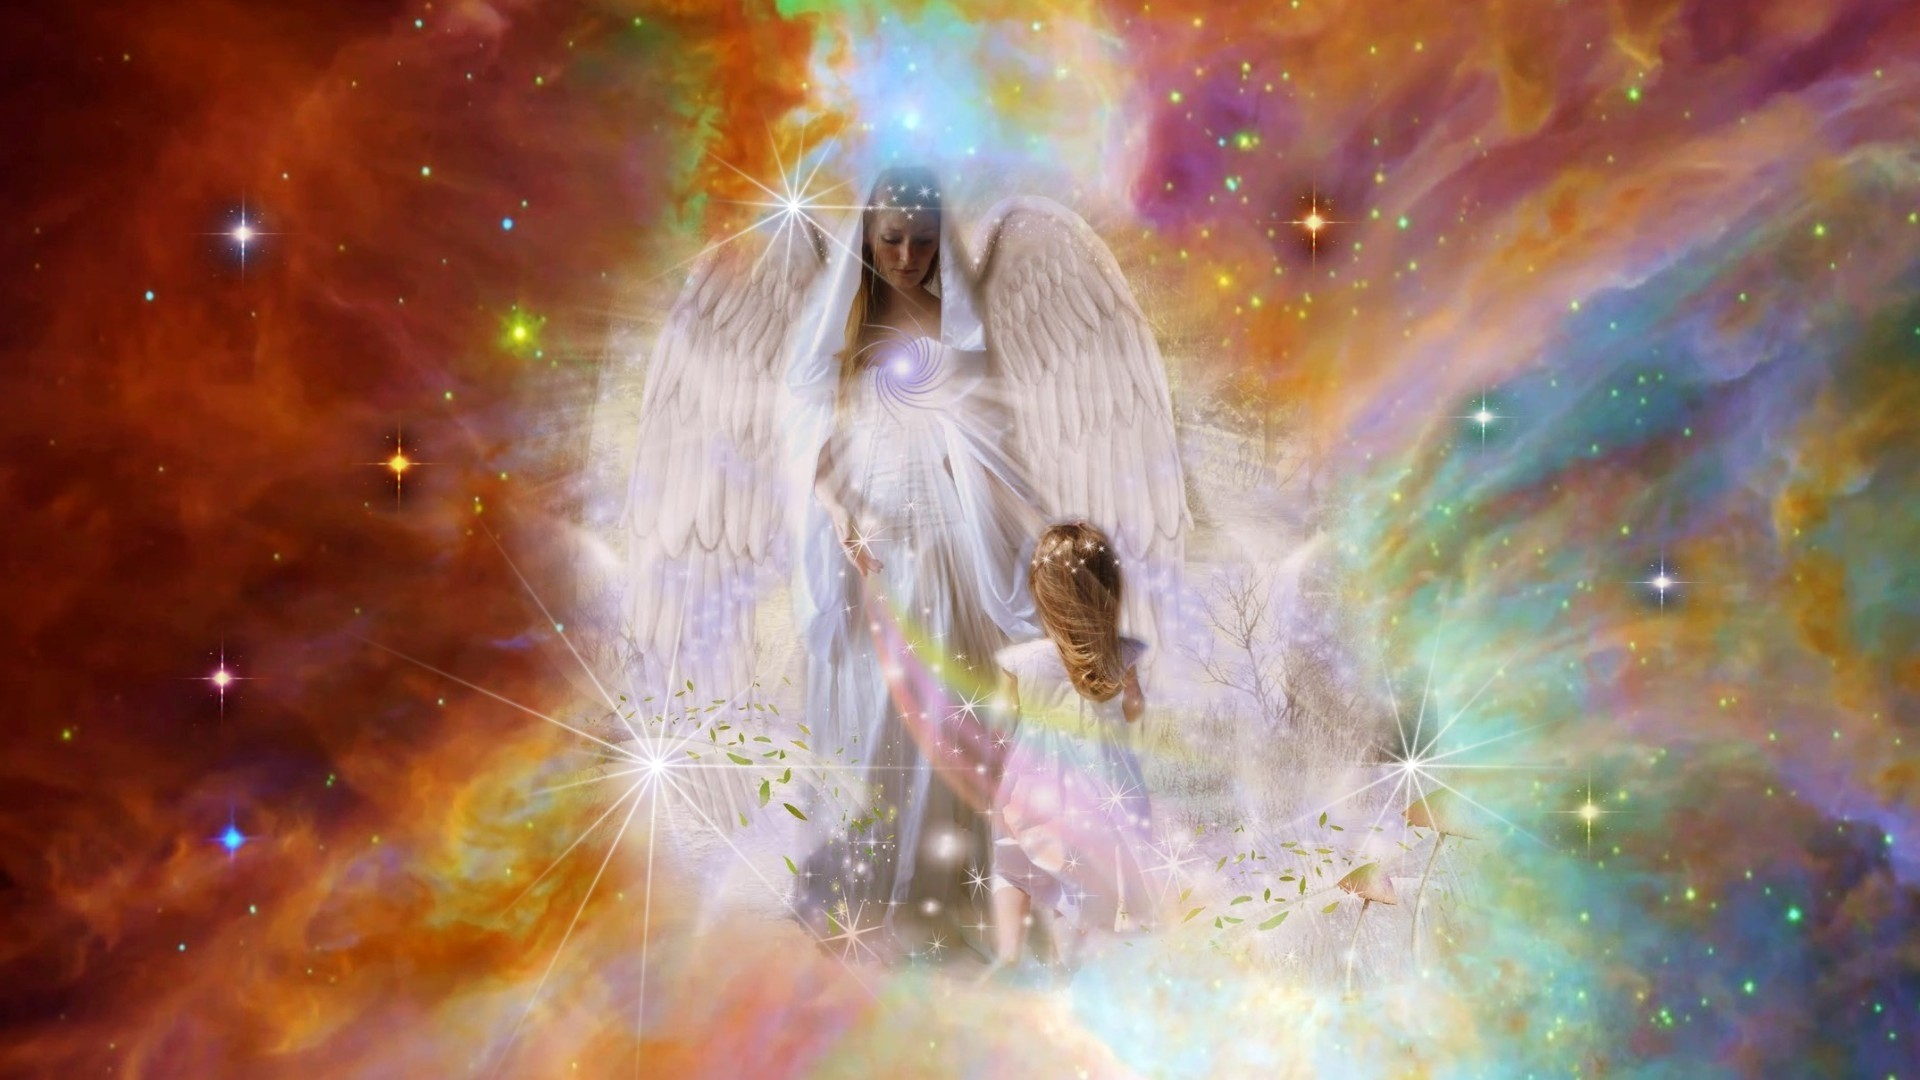 Best images about love coffee on Pinterest Wings, Sad angel 1600×1200 Angel  Picture Wallpapers (45 Wallpapers)   Adorable Wallpapers   Desktop    Pinterest …